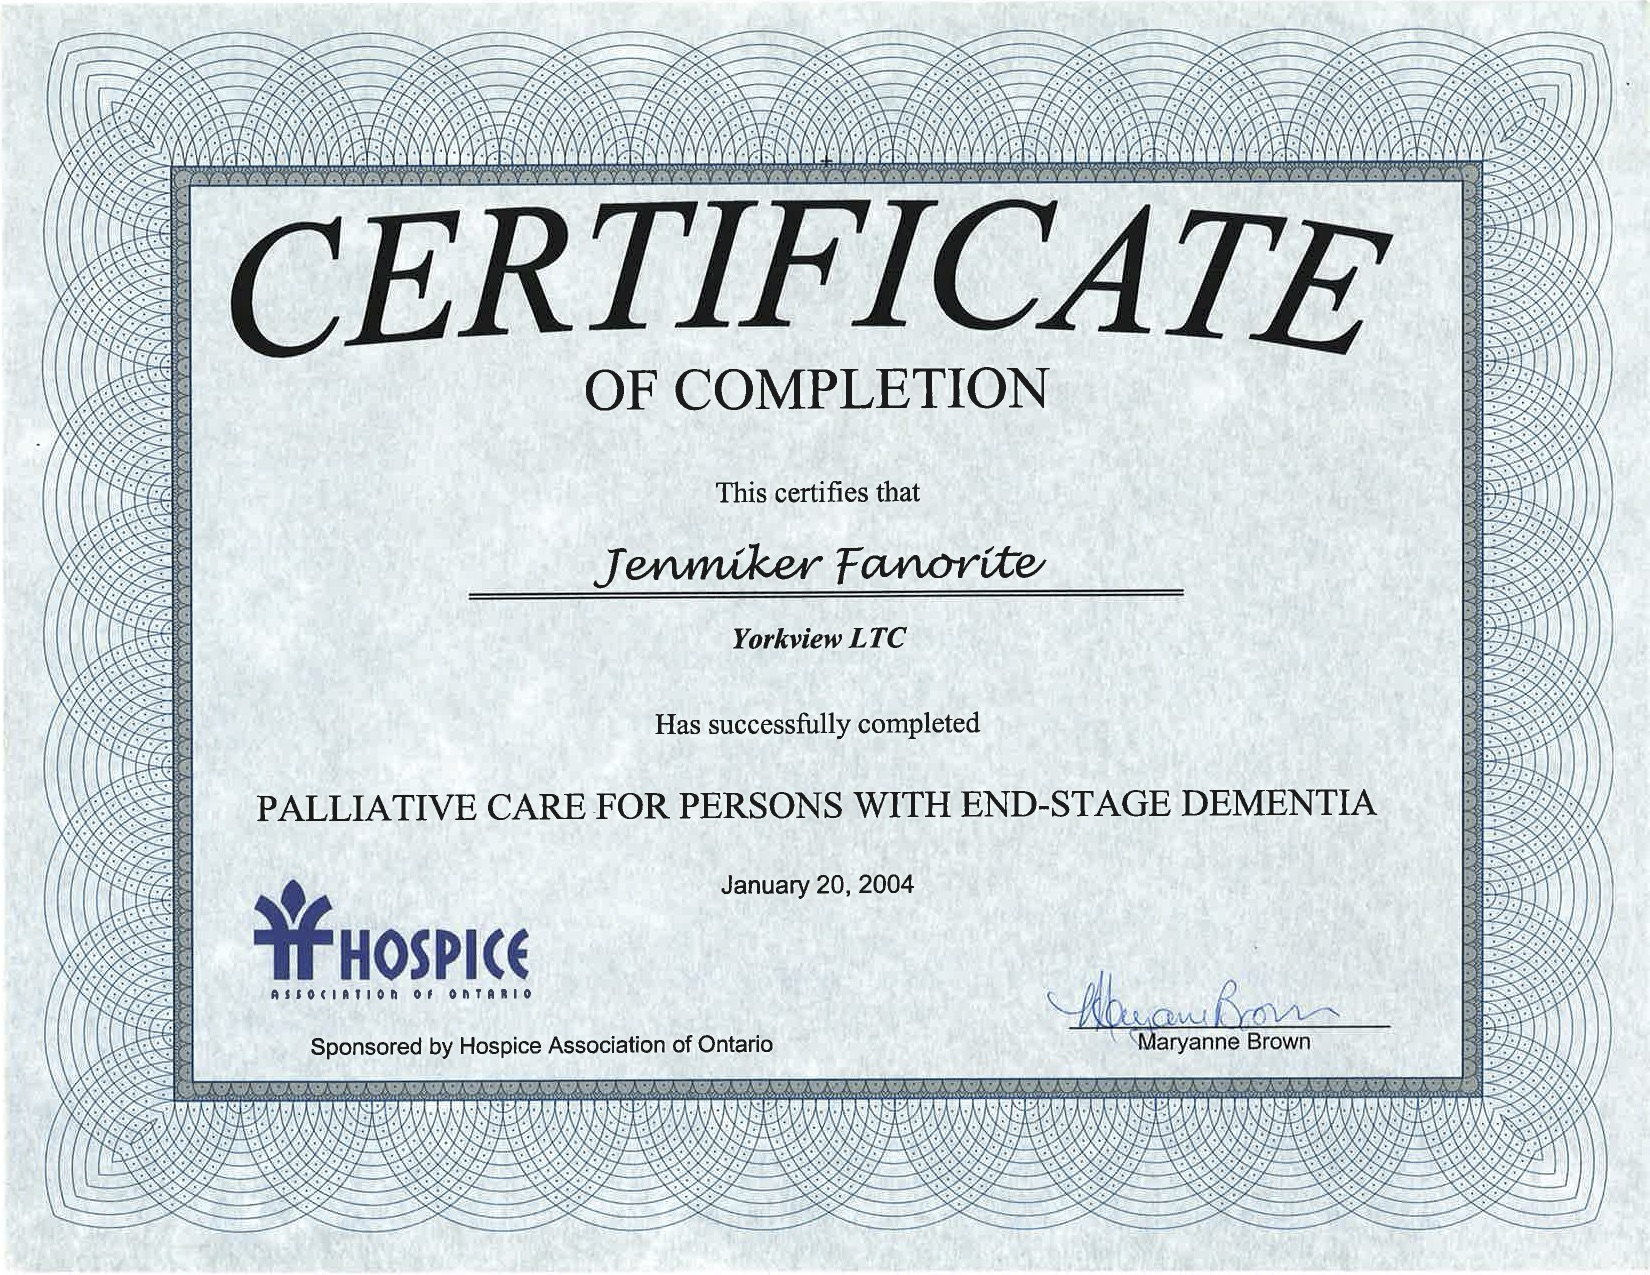 Certificate of Completion  Hospice Association of Ontario  Jennifer Favorite  Personal